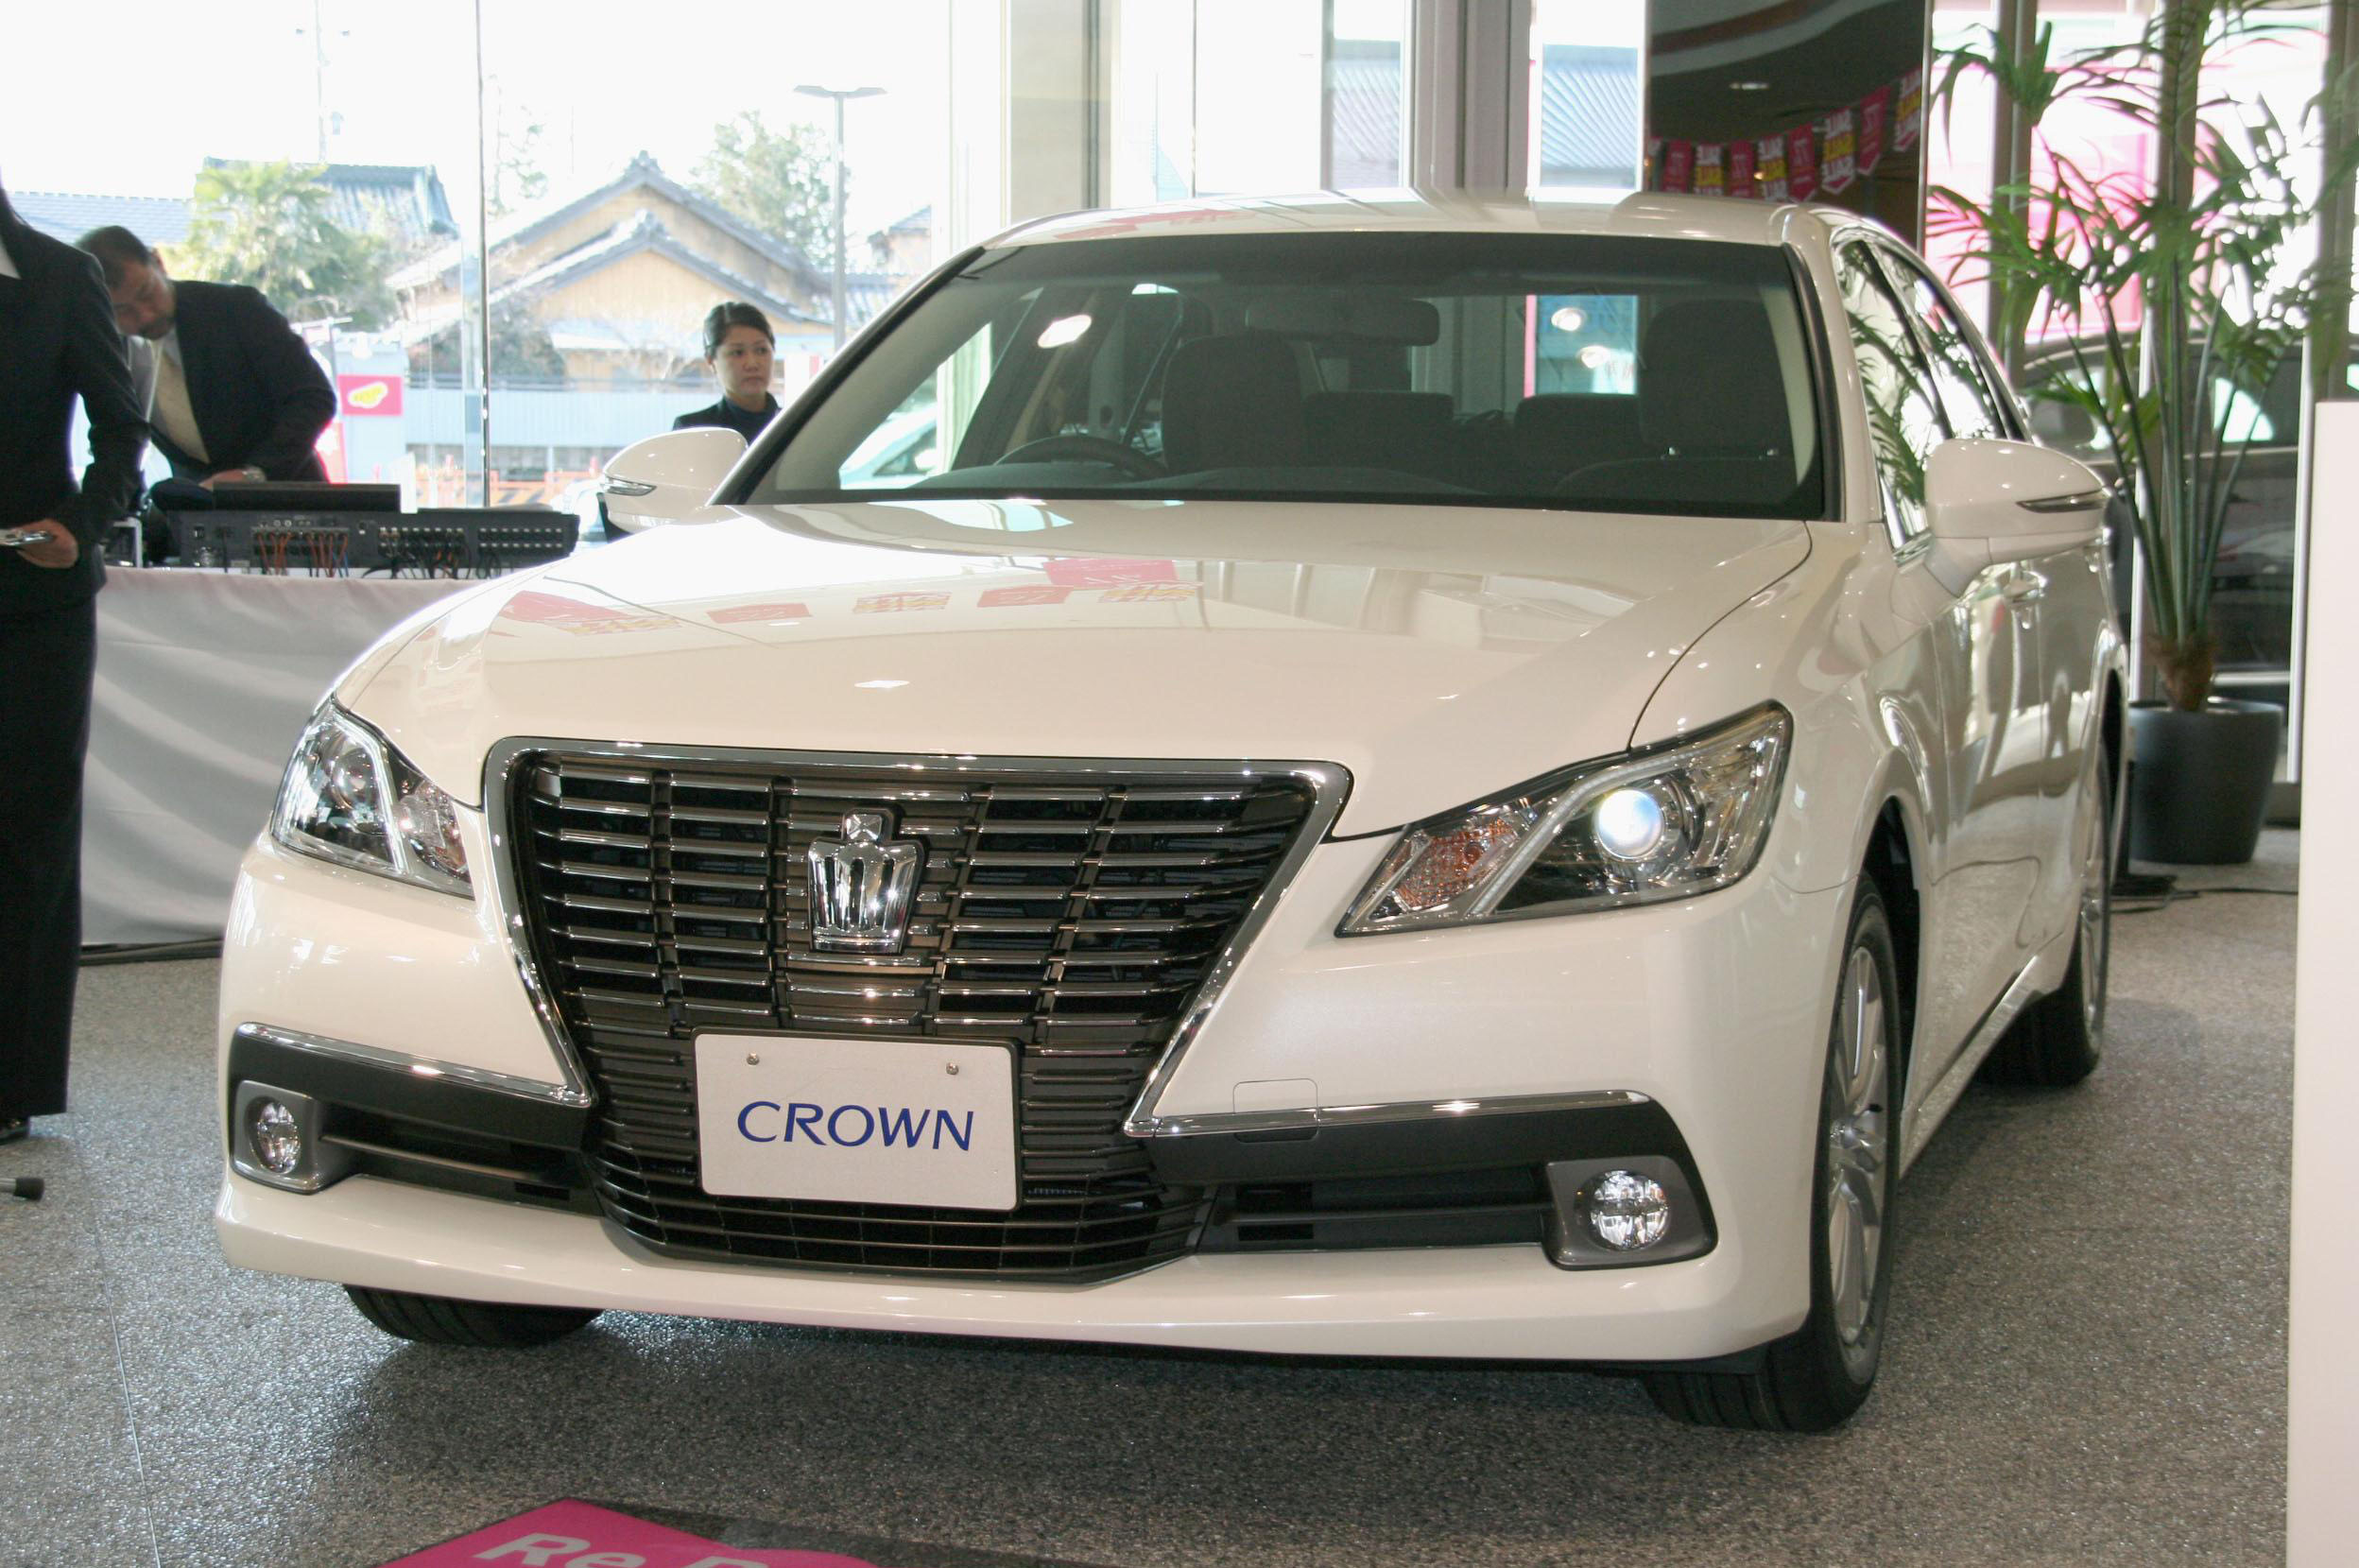 Polished jewel: Toyota Motor Corp.'s fully remodeled Crown luxury sedan is displayed at a dealership in Toyota, Aichi Prefecture, on Tuesday. | KYODO